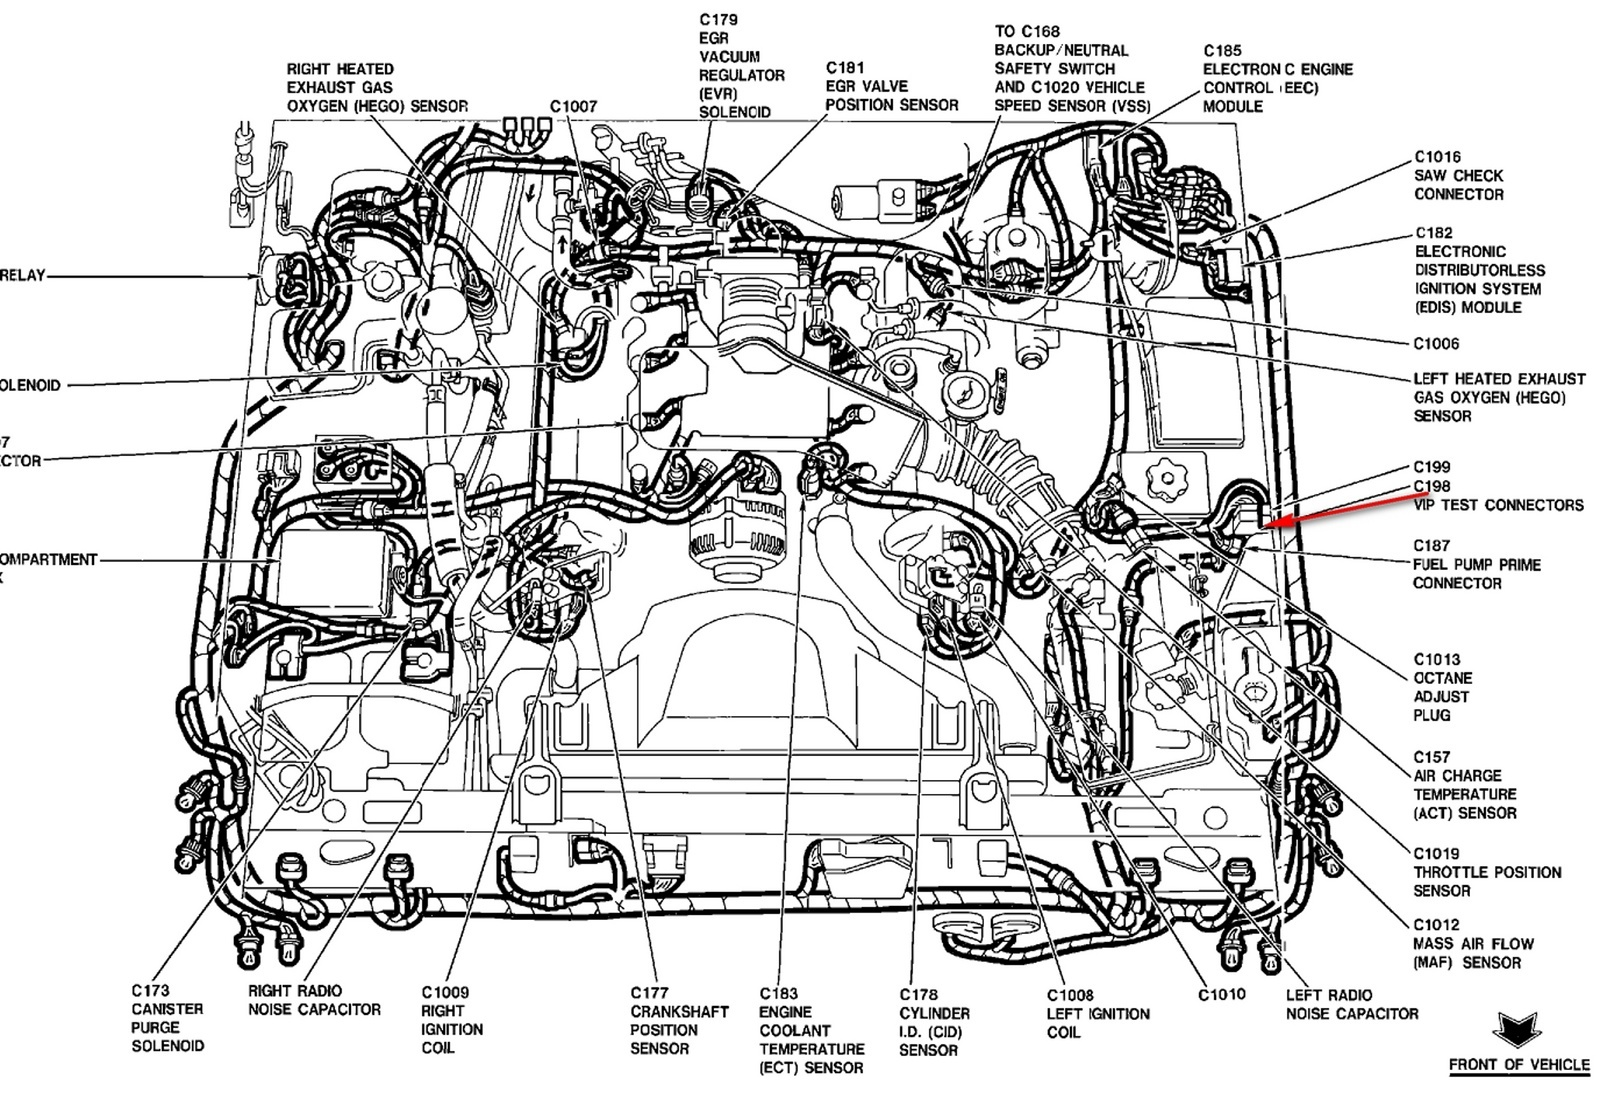 hight resolution of 1999 ford crown victoria engine diagram universal wiring diagram 1999 ford crown victoria engine diagram wiring